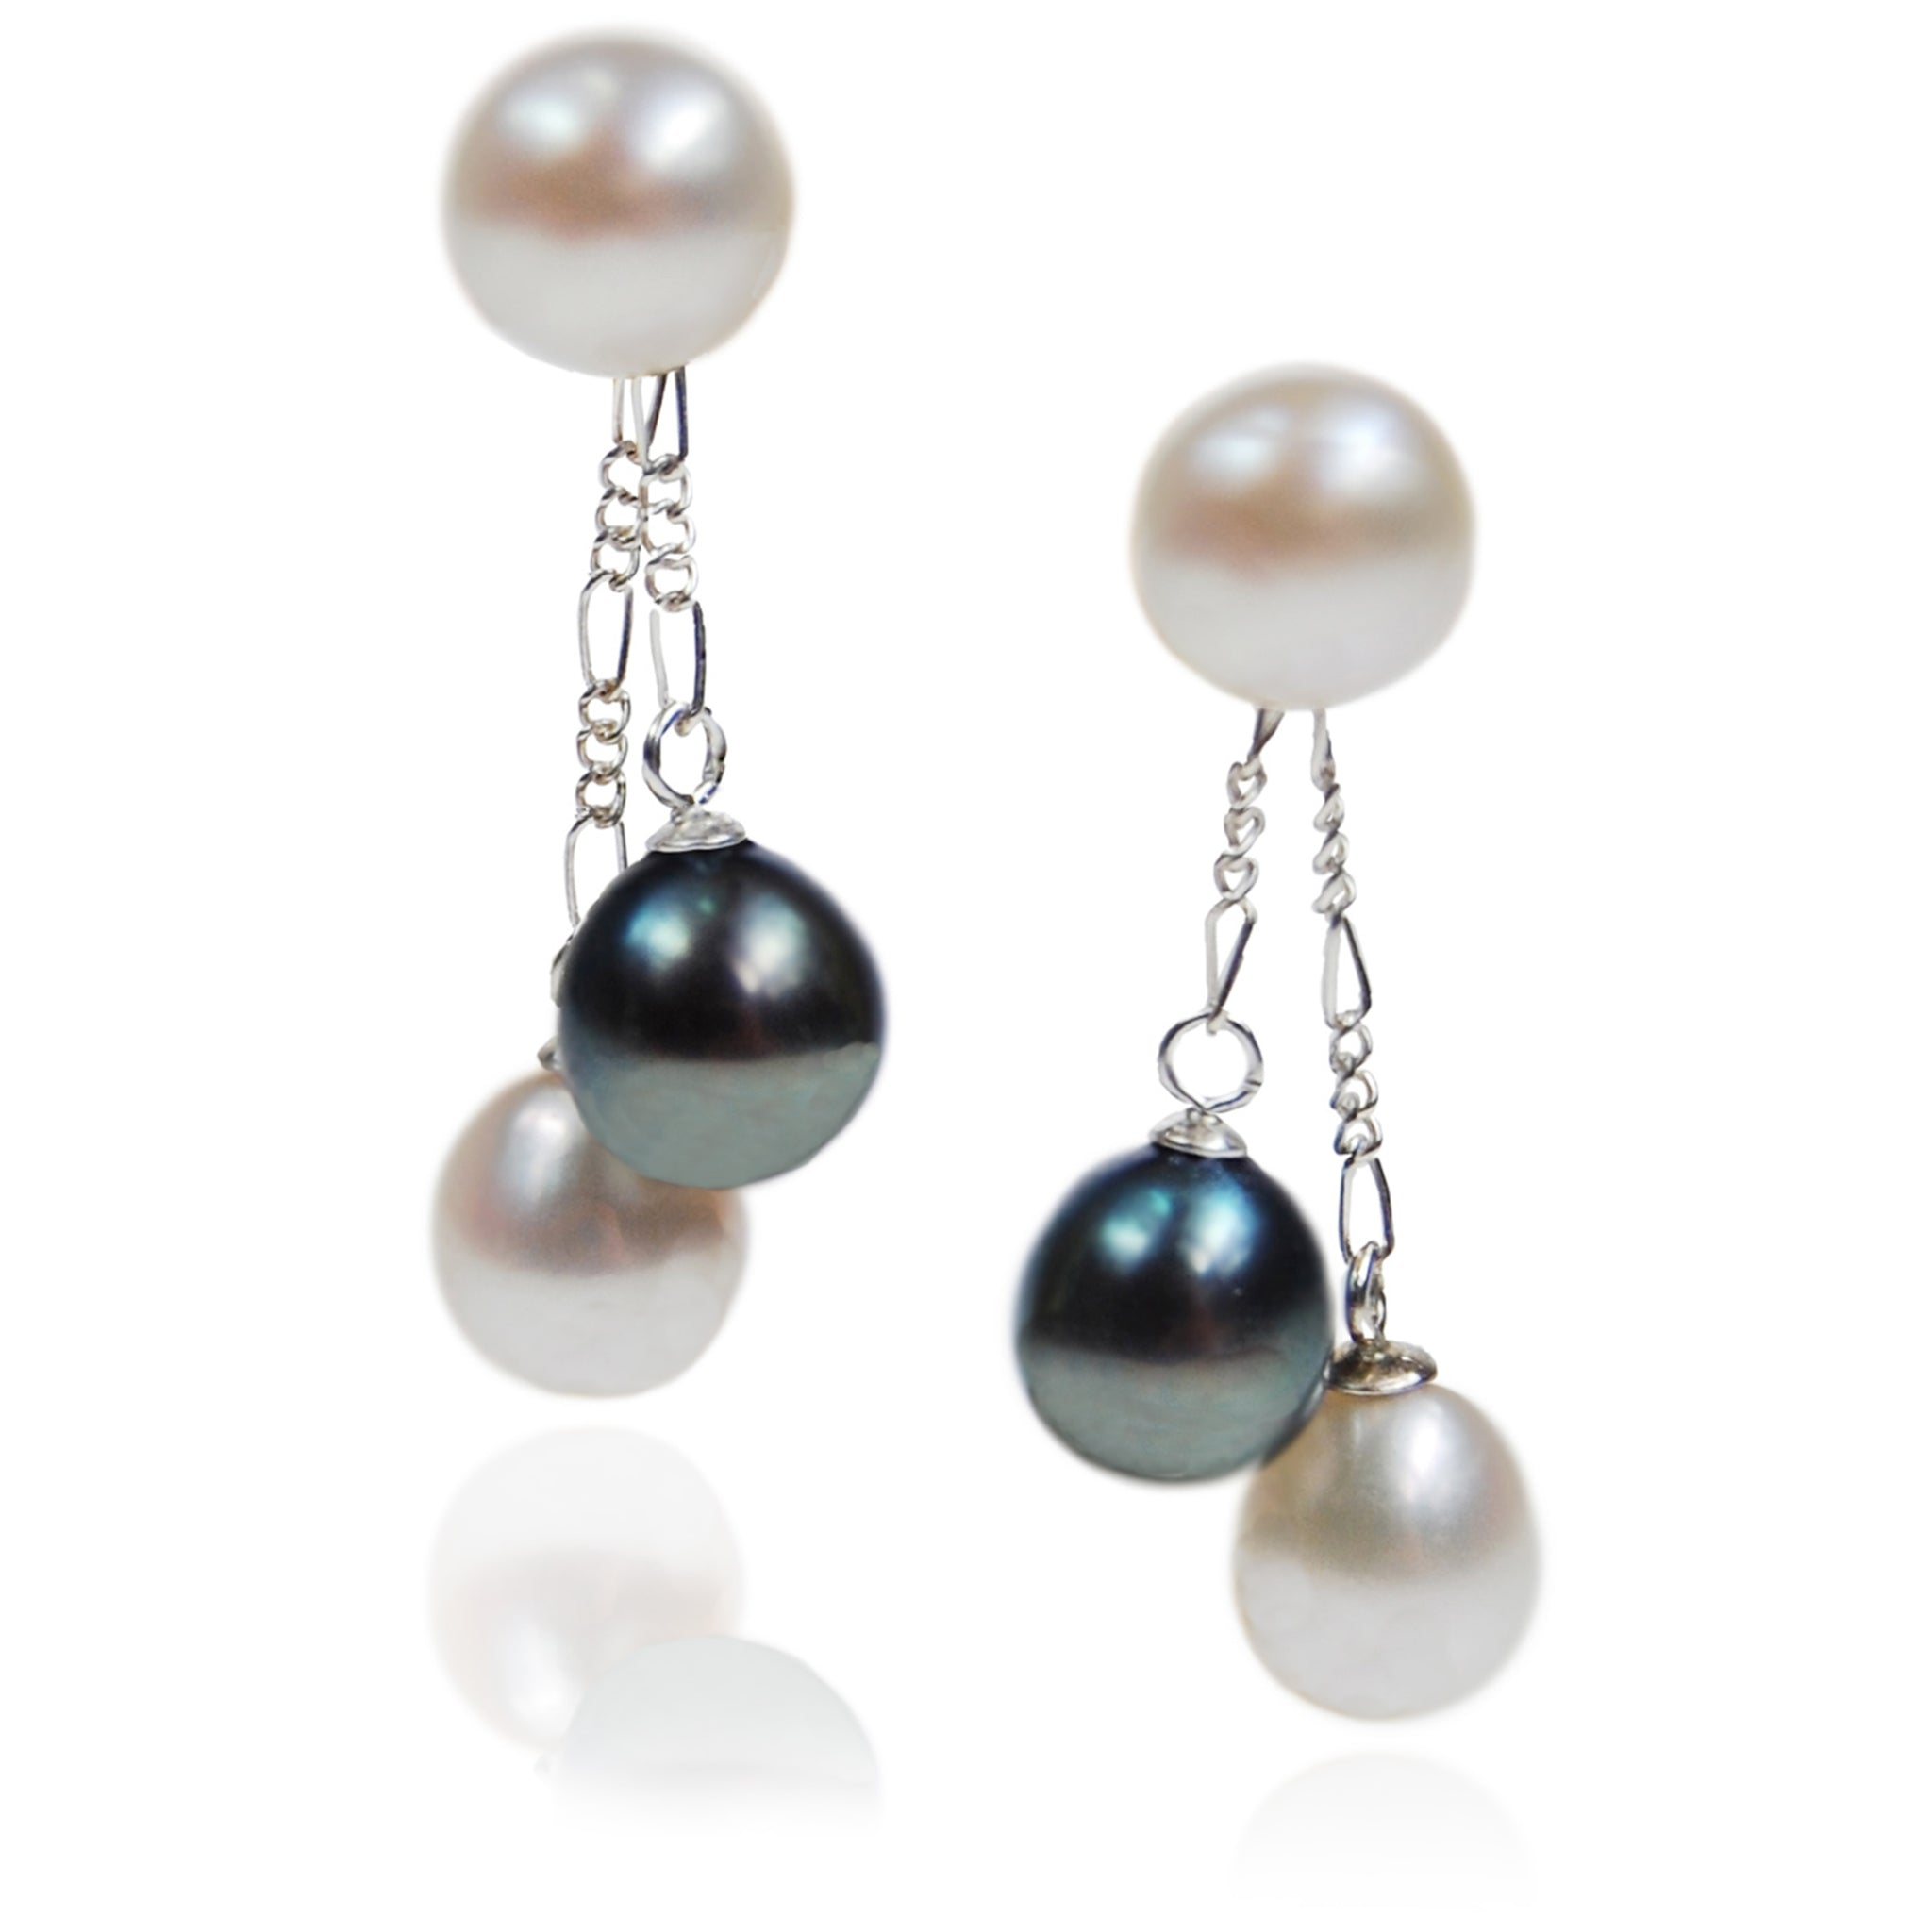 White & Black Freshwater Pearl Double Drop Earrings